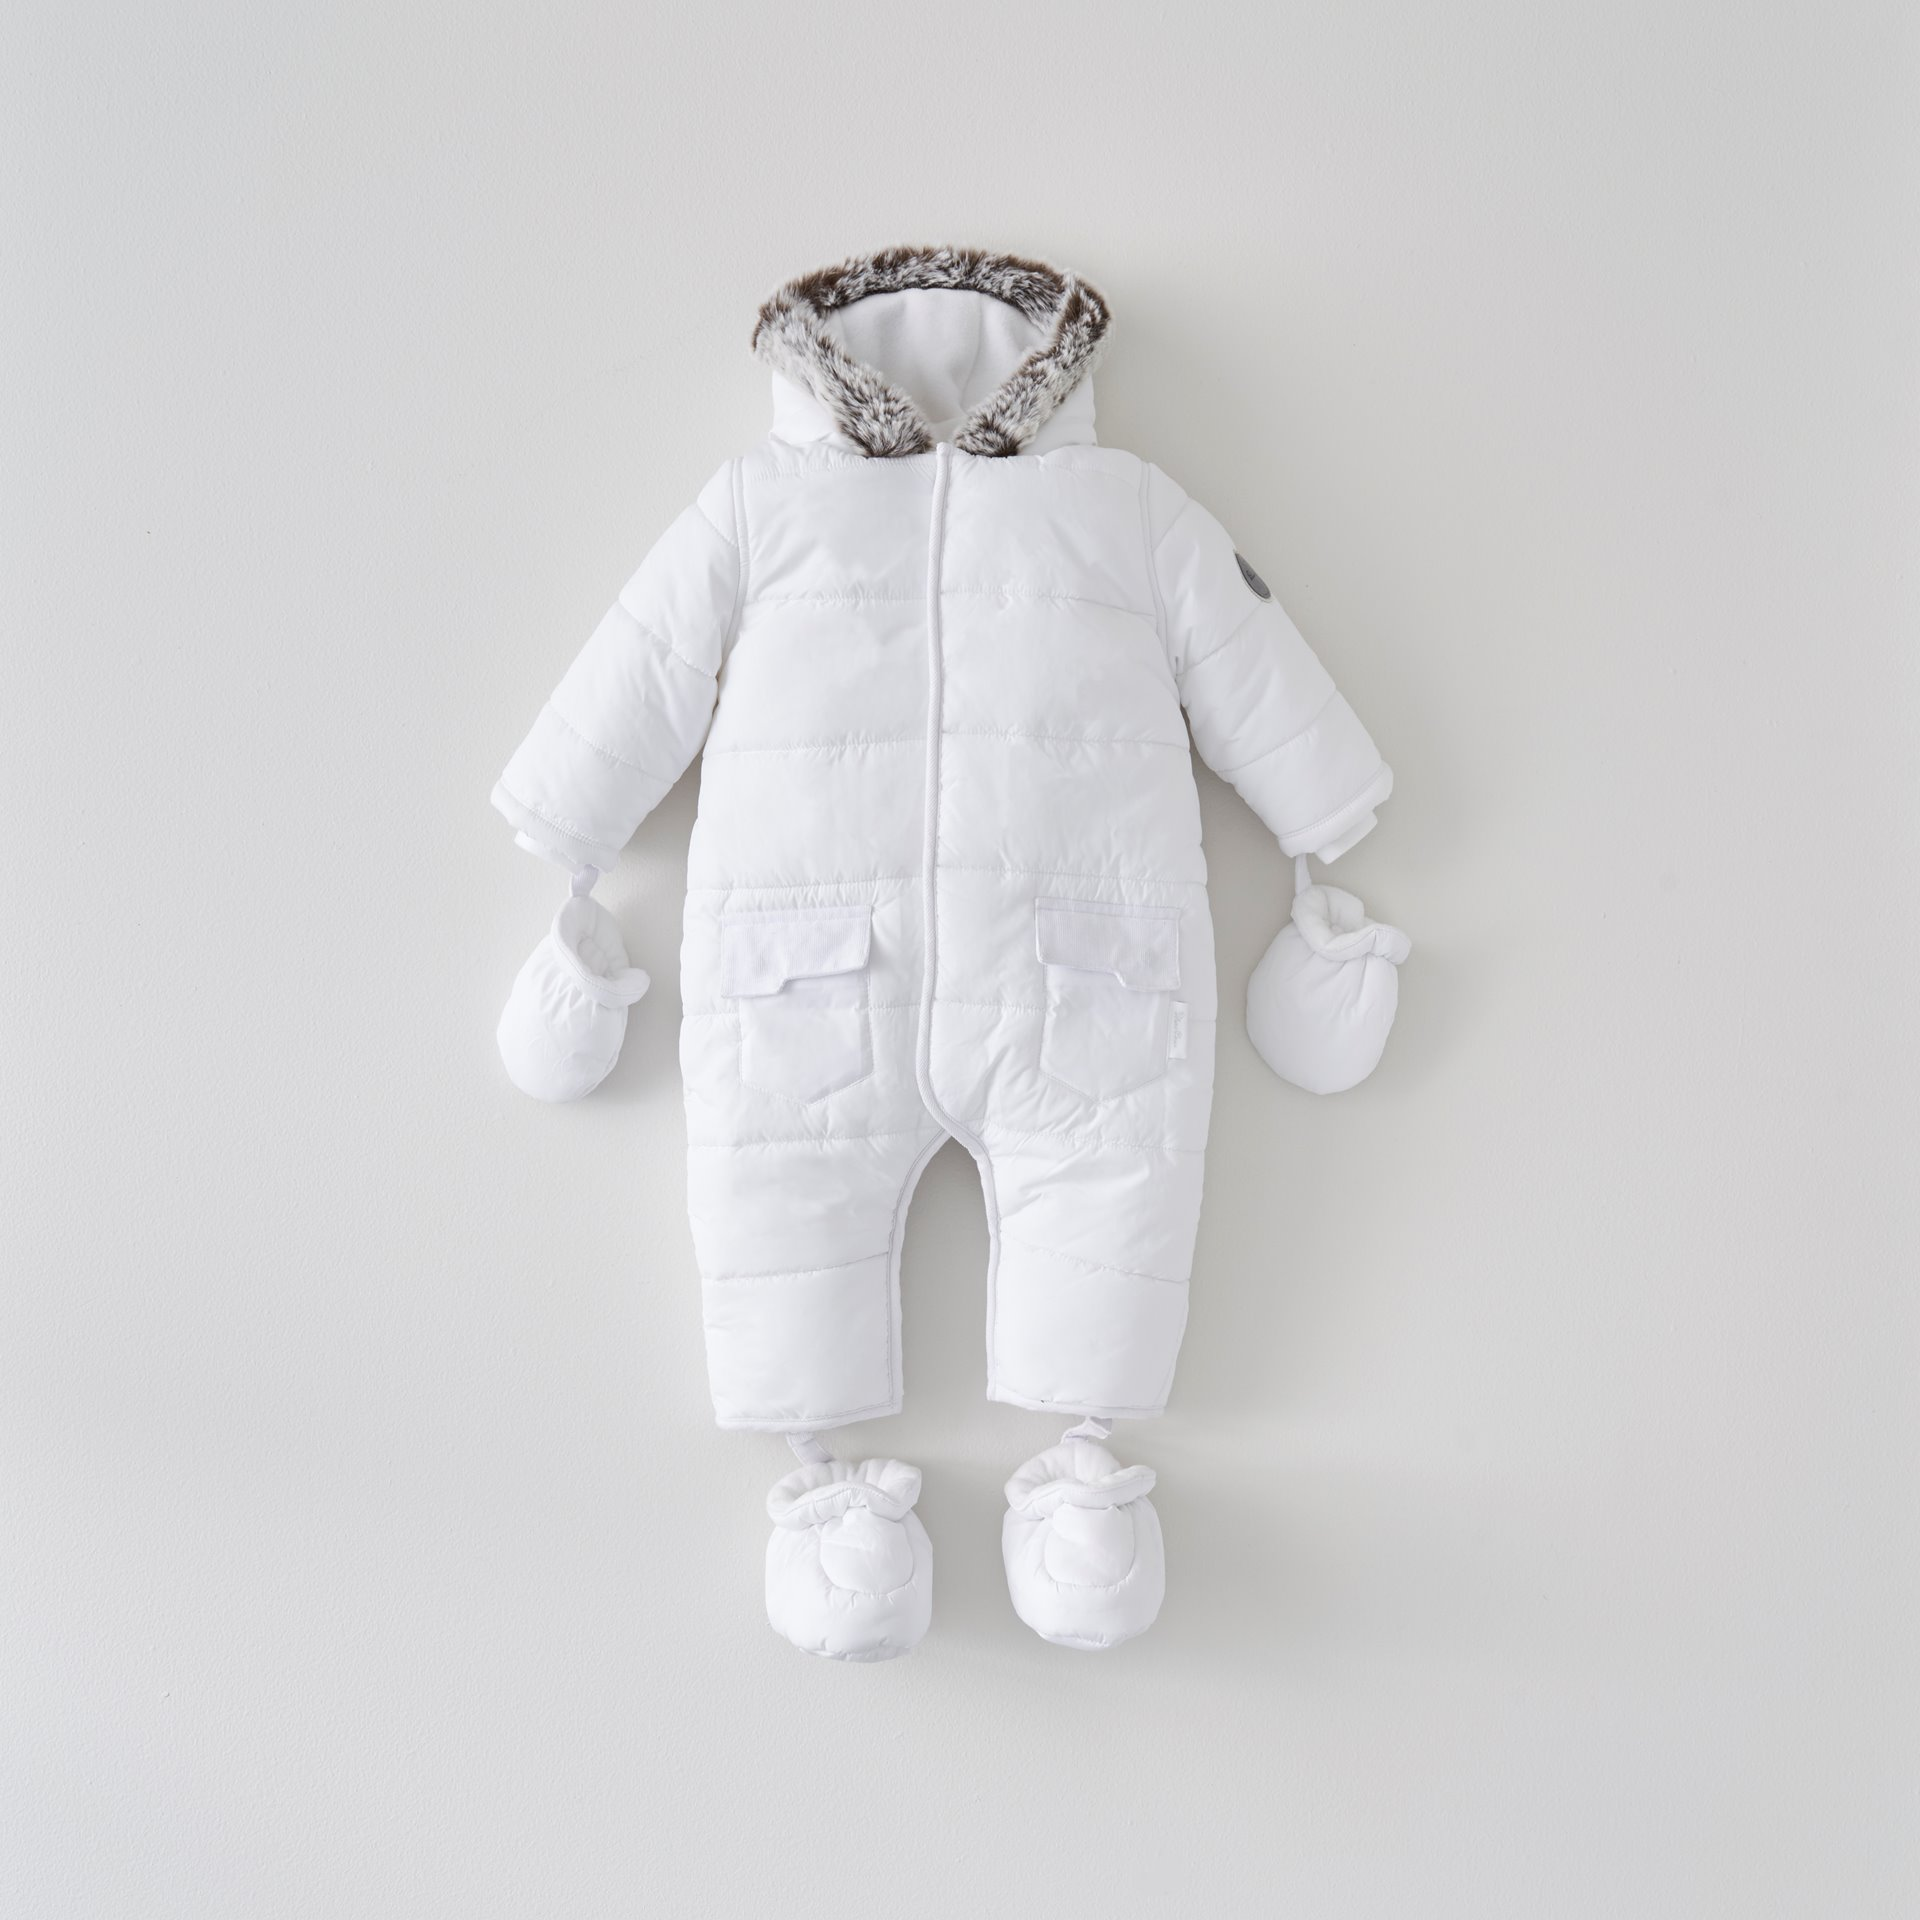 White Quilted Pramsuit 9-12 Months